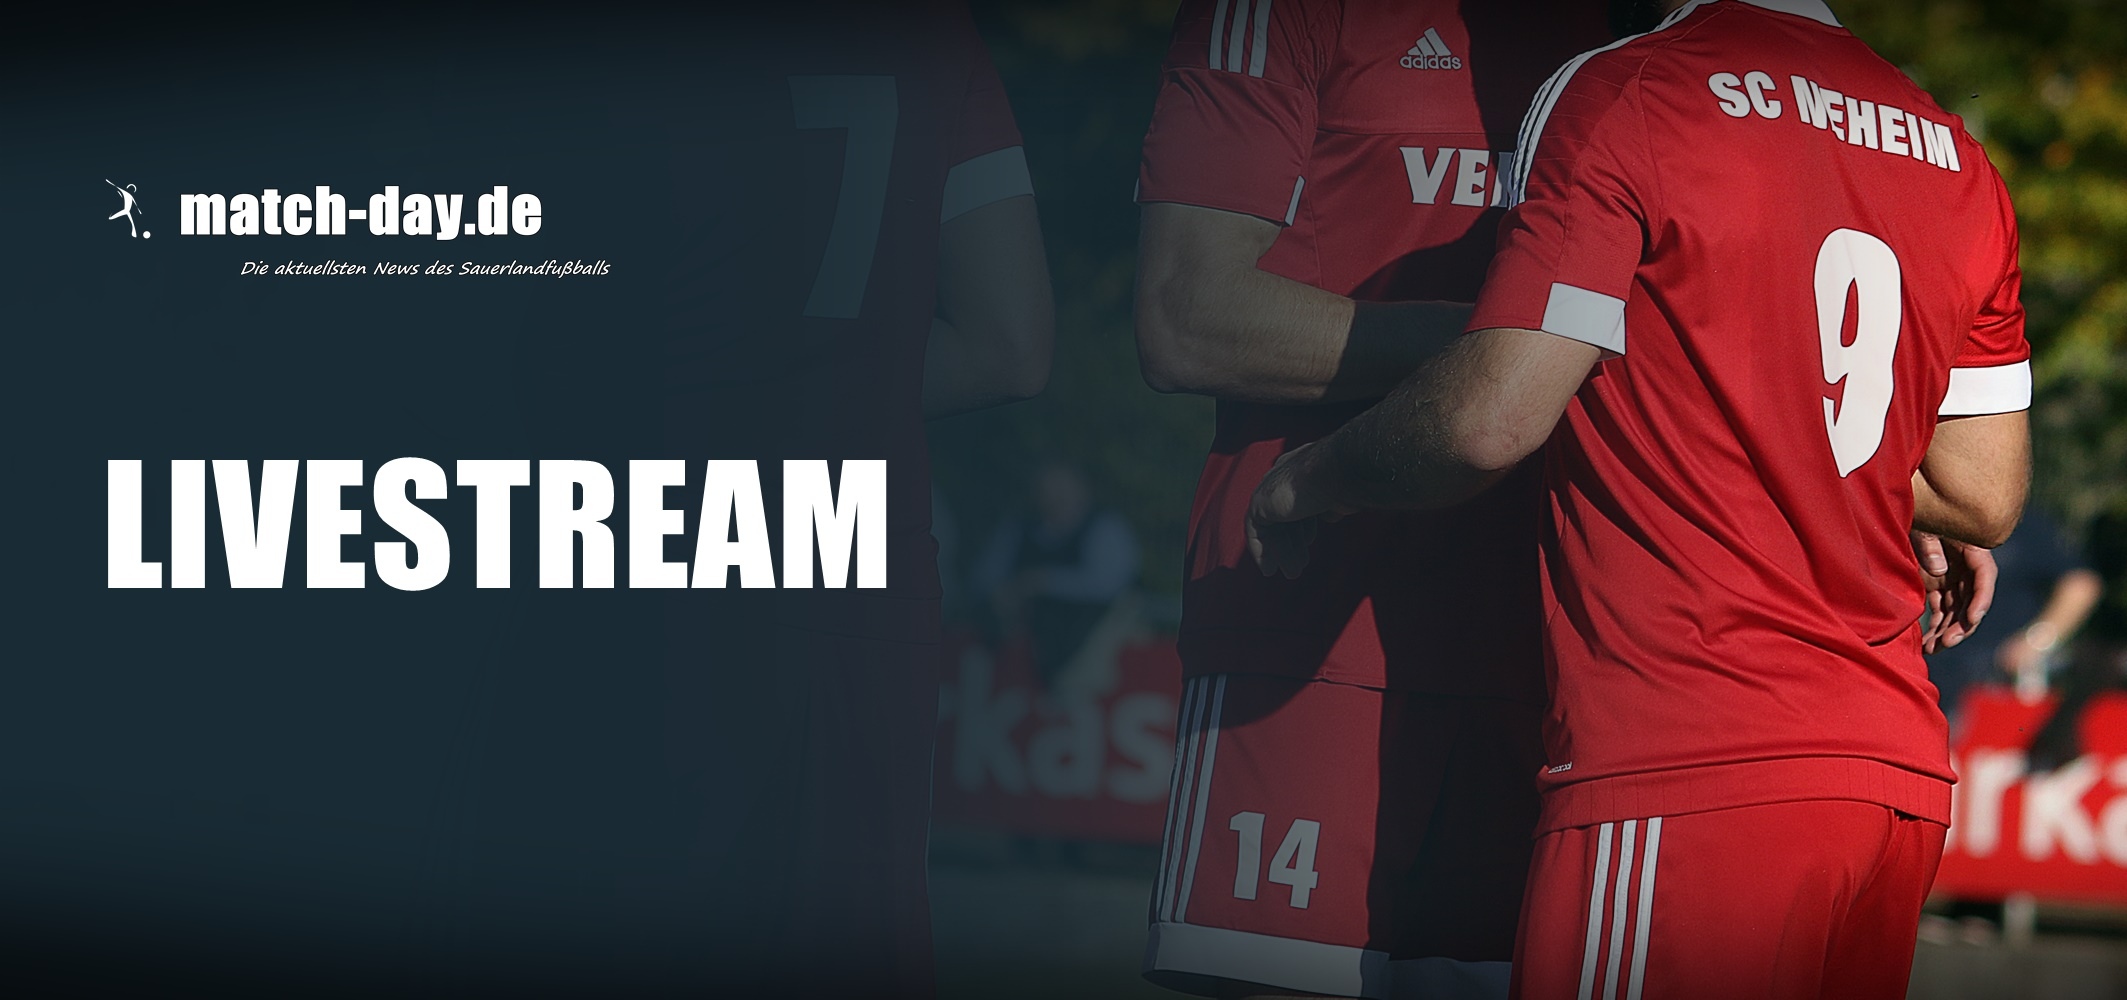 livestream-neheim-match-day